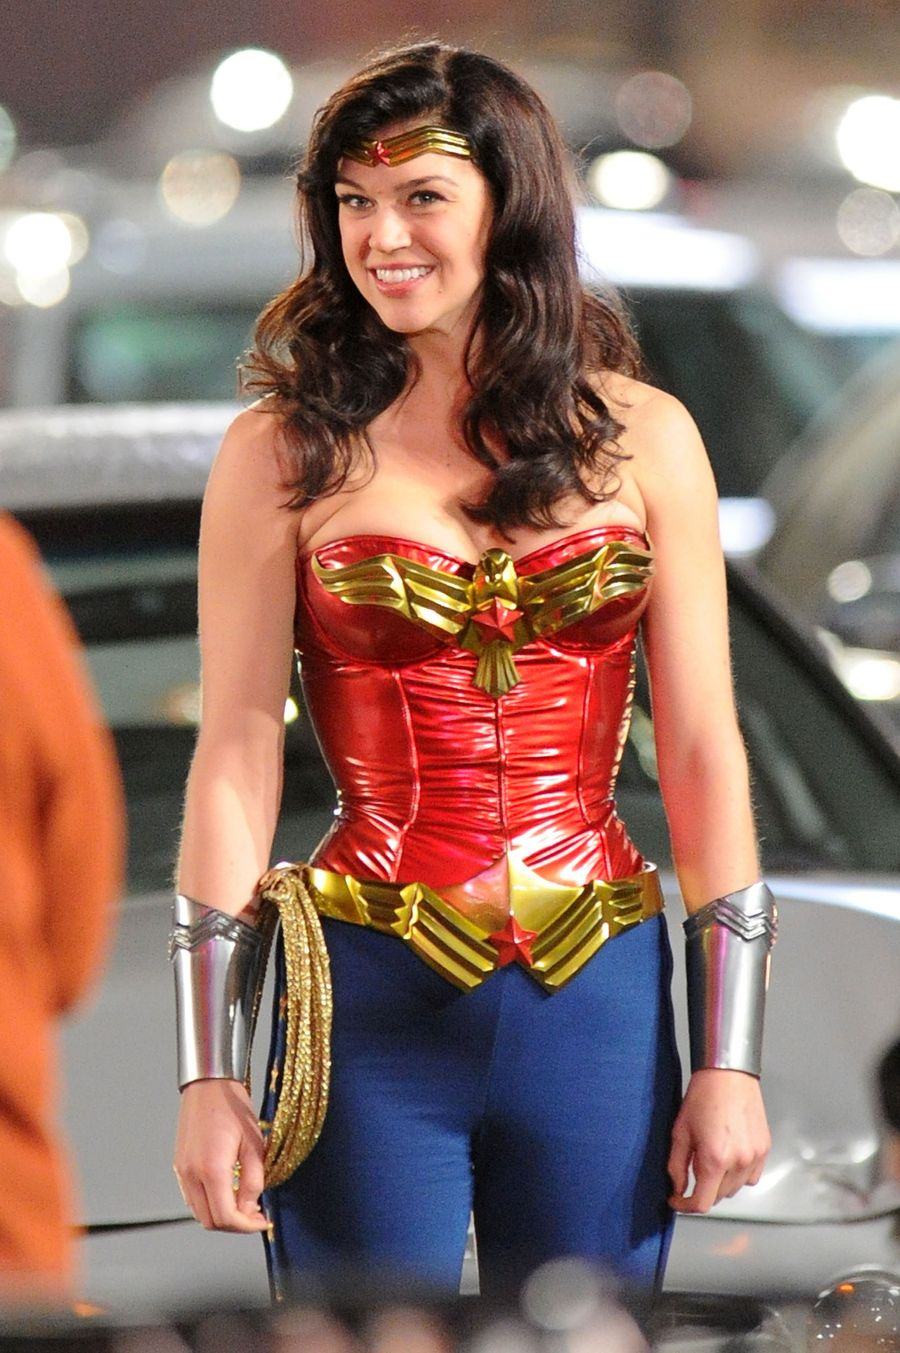 Costume wonder woman adrianne palicki